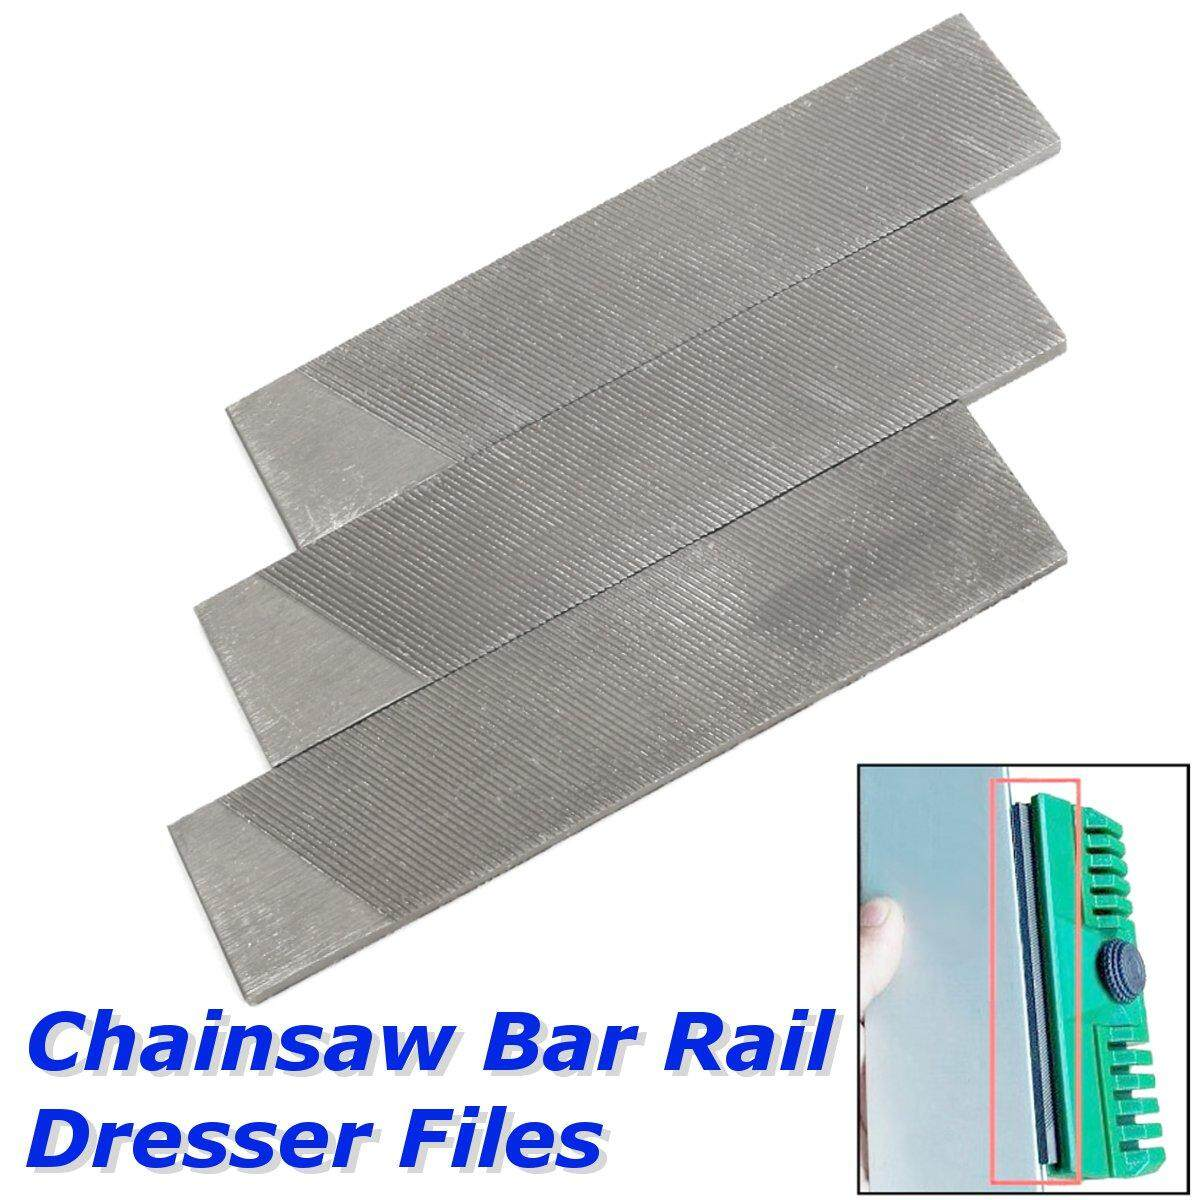 3pcs General Chainsaw Bar Rail Dresser Files for Oregon for Stihl Saw Chain